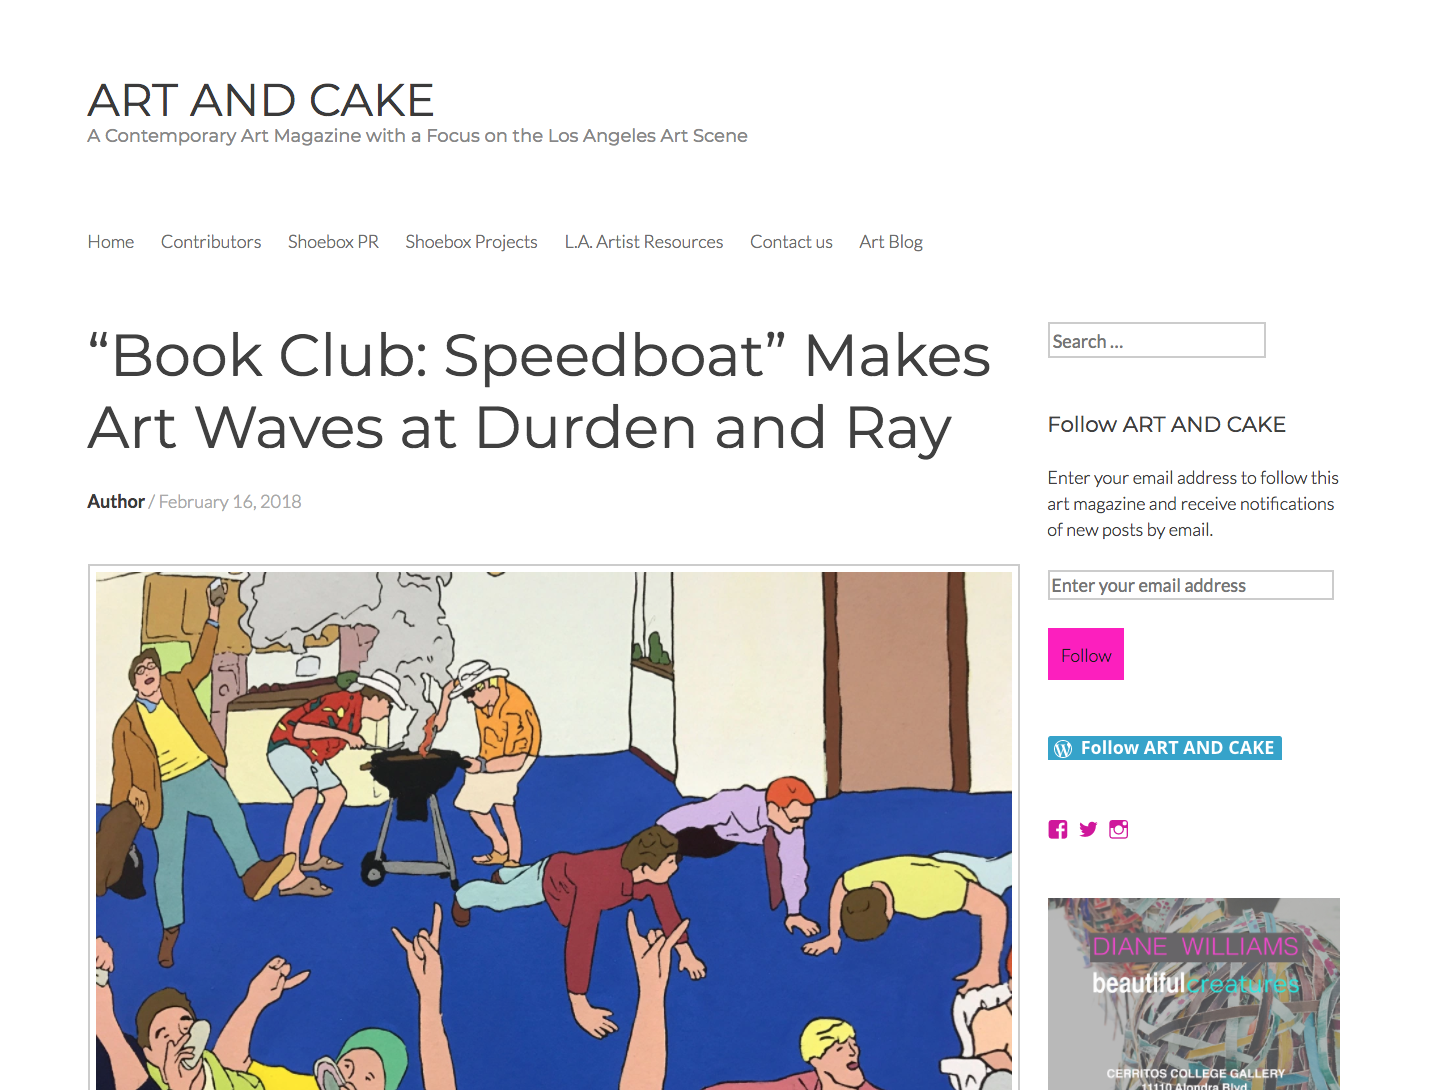 Book Club featured in Art And Cake - Book Club: Speedboat Makes Art Wavesthrough February 24Durden and Ray, Los AngelesBy Genie Davis